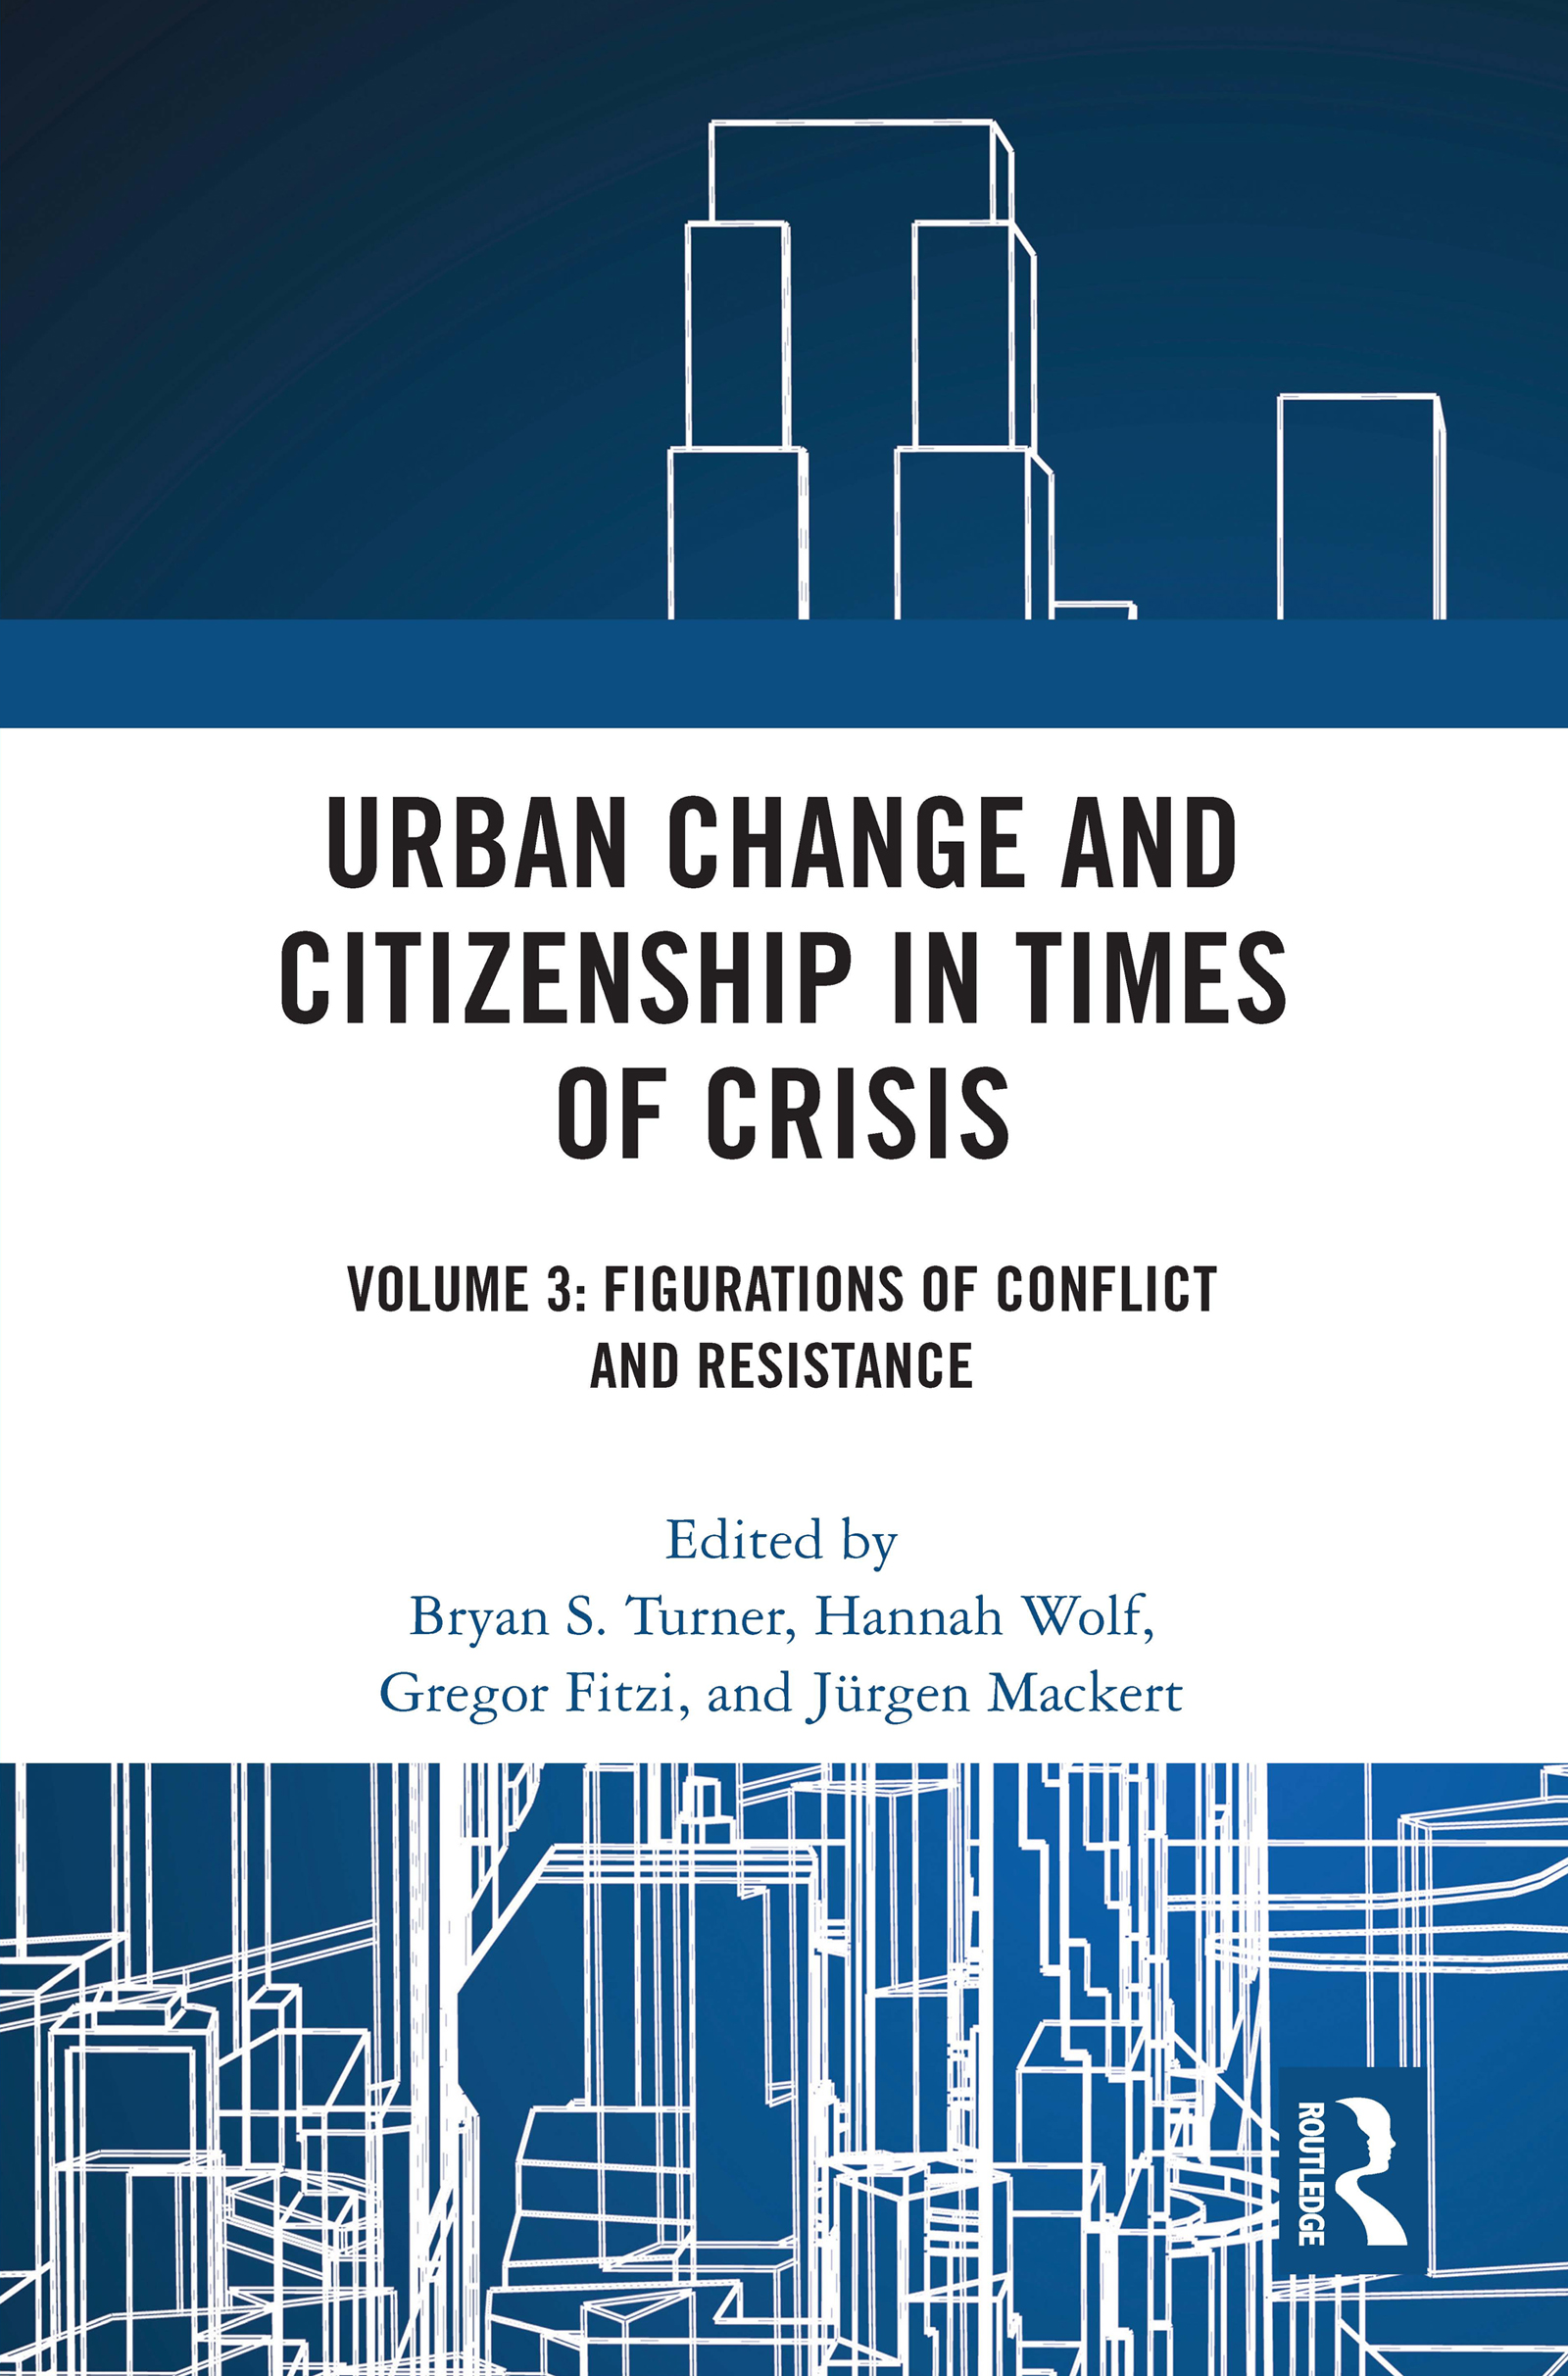 Urban Change and Citizenship in Times of Crisis: Volume 3: Figurations of Conflict and Resistance book cover